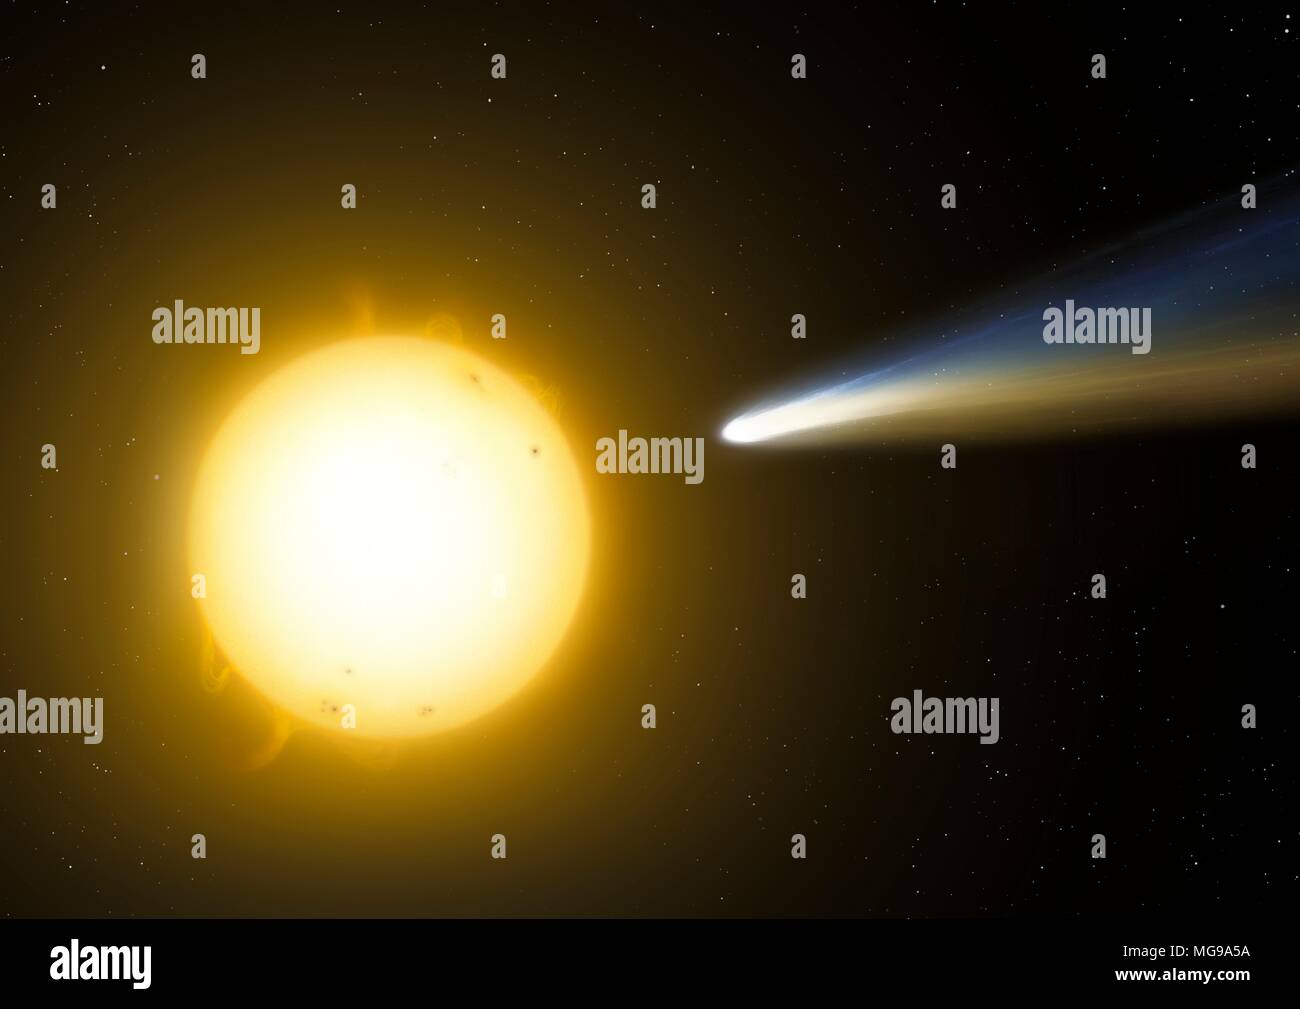 Illustration of a sungrazing comet. These are comets that pass very close to the Sun at perihelion. Sometimes they can skirt above the photosphere at distances of just a few thousand kilometres - the mere diameter of a small planet. Occasionally comets are completely evaporated in this process, but some can last several passes before either falling into the Sun or disintegrating because of tidal forces. - Stock Image